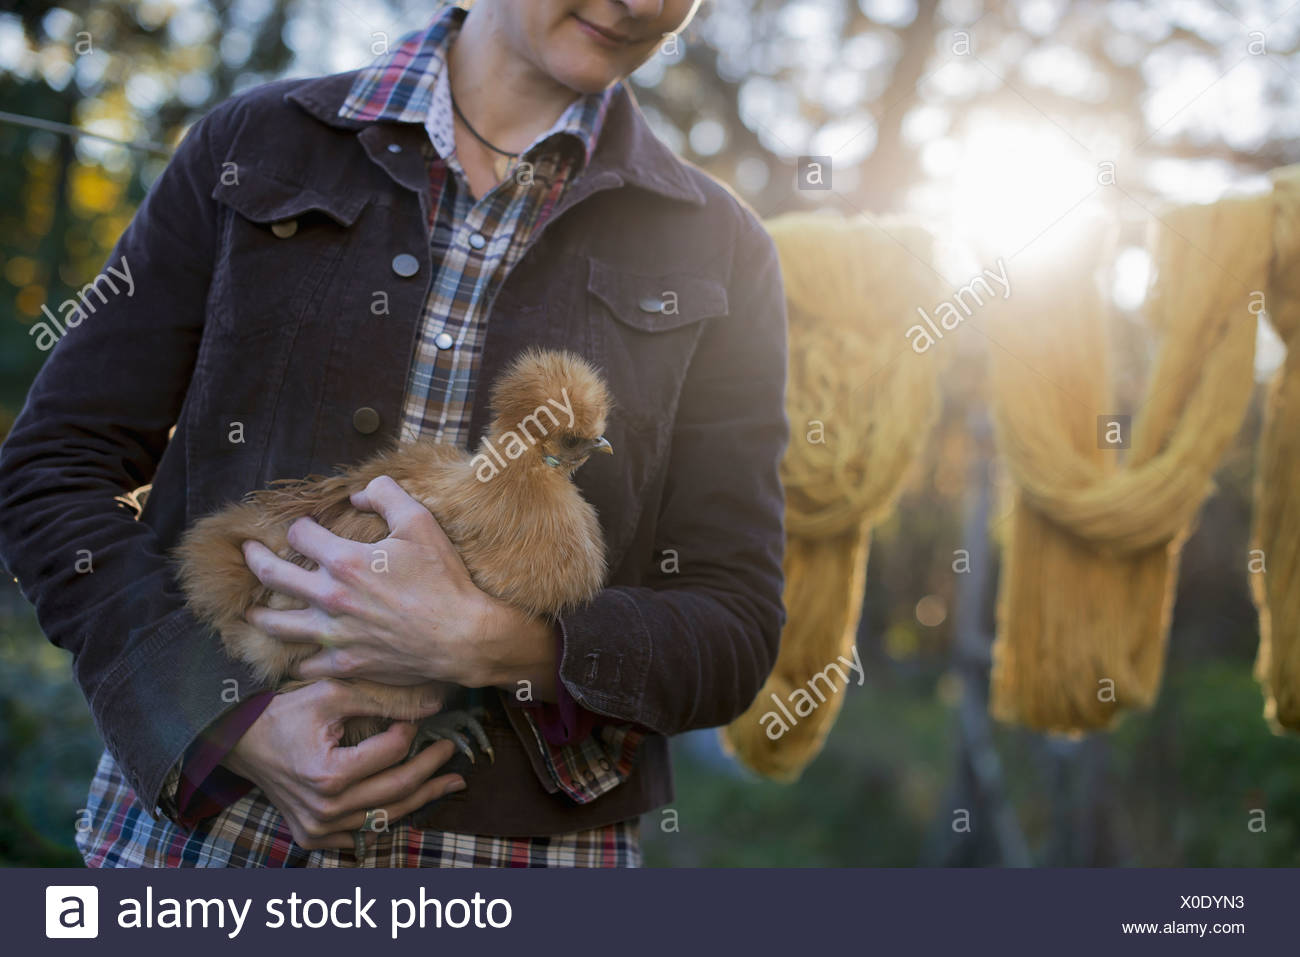 A woman holding a small brown fluffy chicken washing line Autumn sunshine filtering through trees - Stock Image